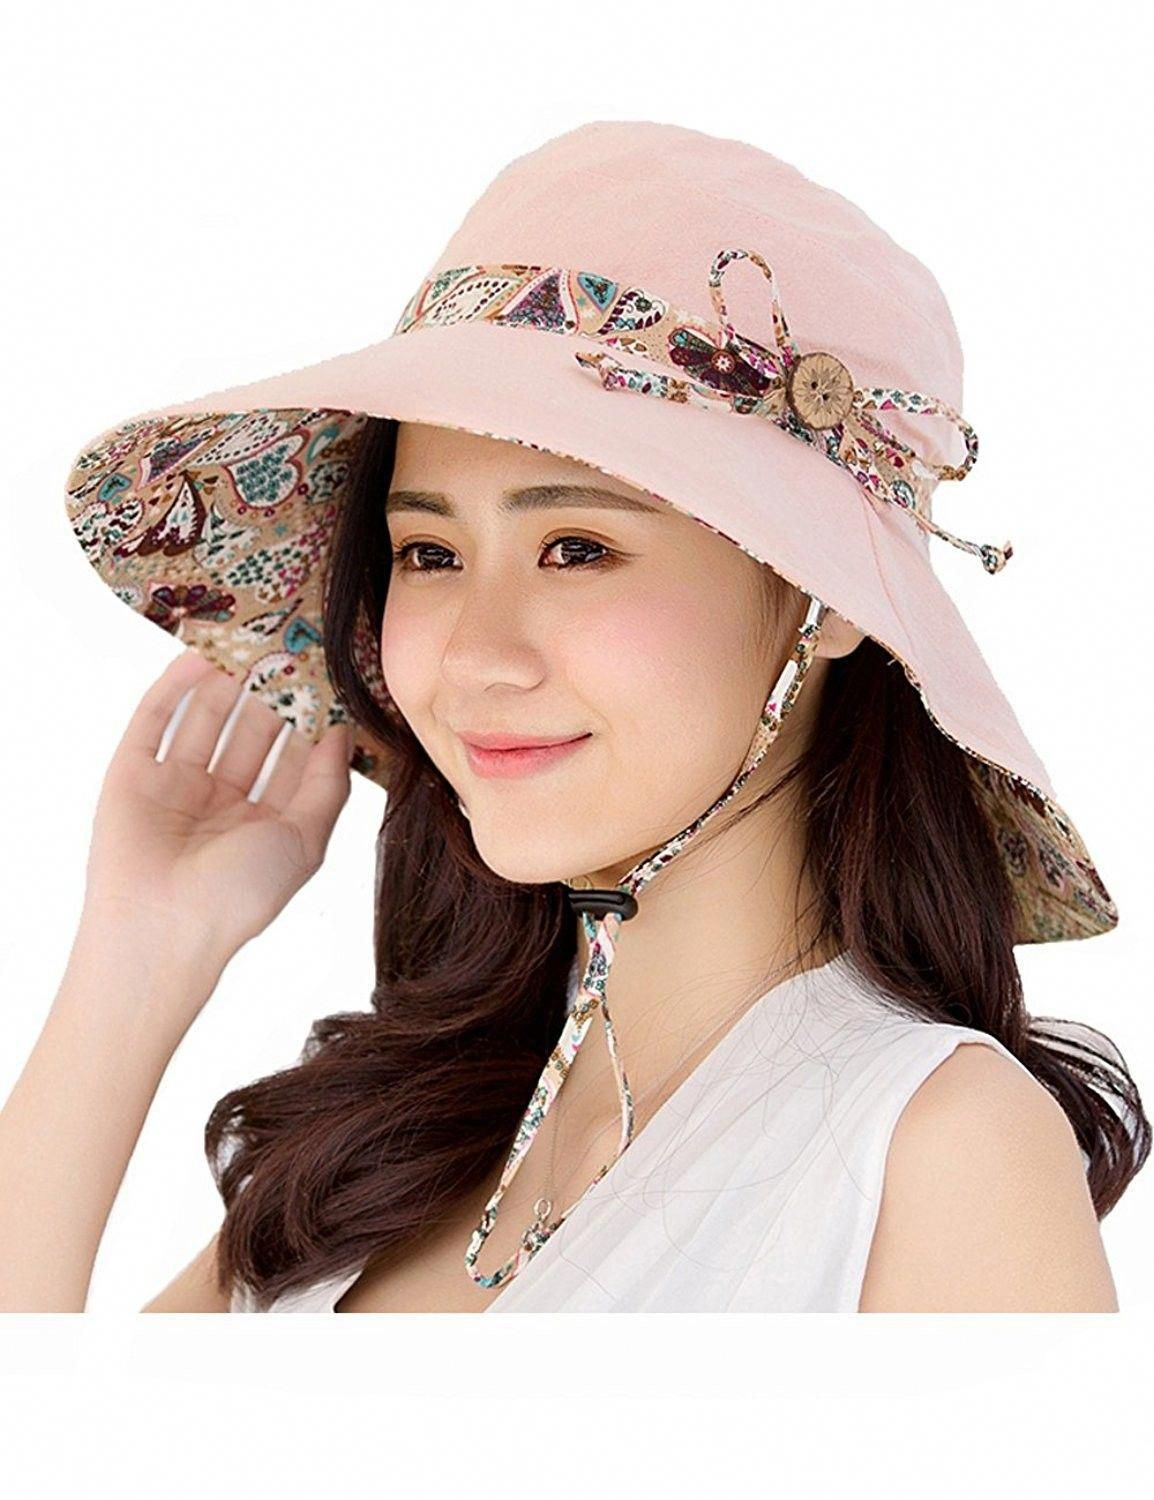 Womens Sun Hat Summer Packable Reversible UV Protection Wide Brim Foldable  Hat - Light Pink - C117YSL56MC - Hats   Caps 5abf2e70d513